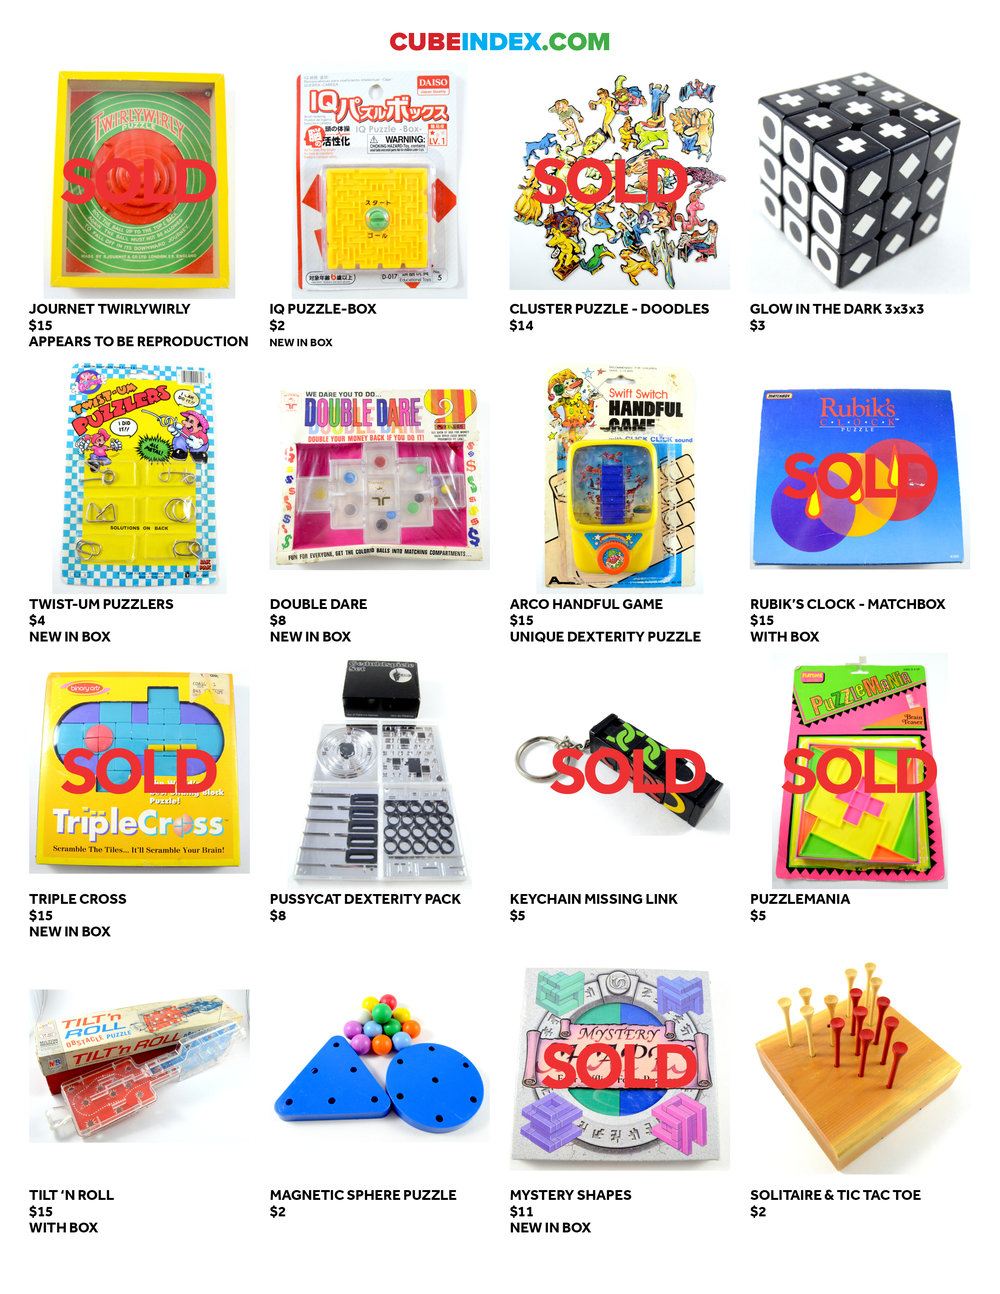 cube-index-for-sale-catalog-april-2017-v514.jpg